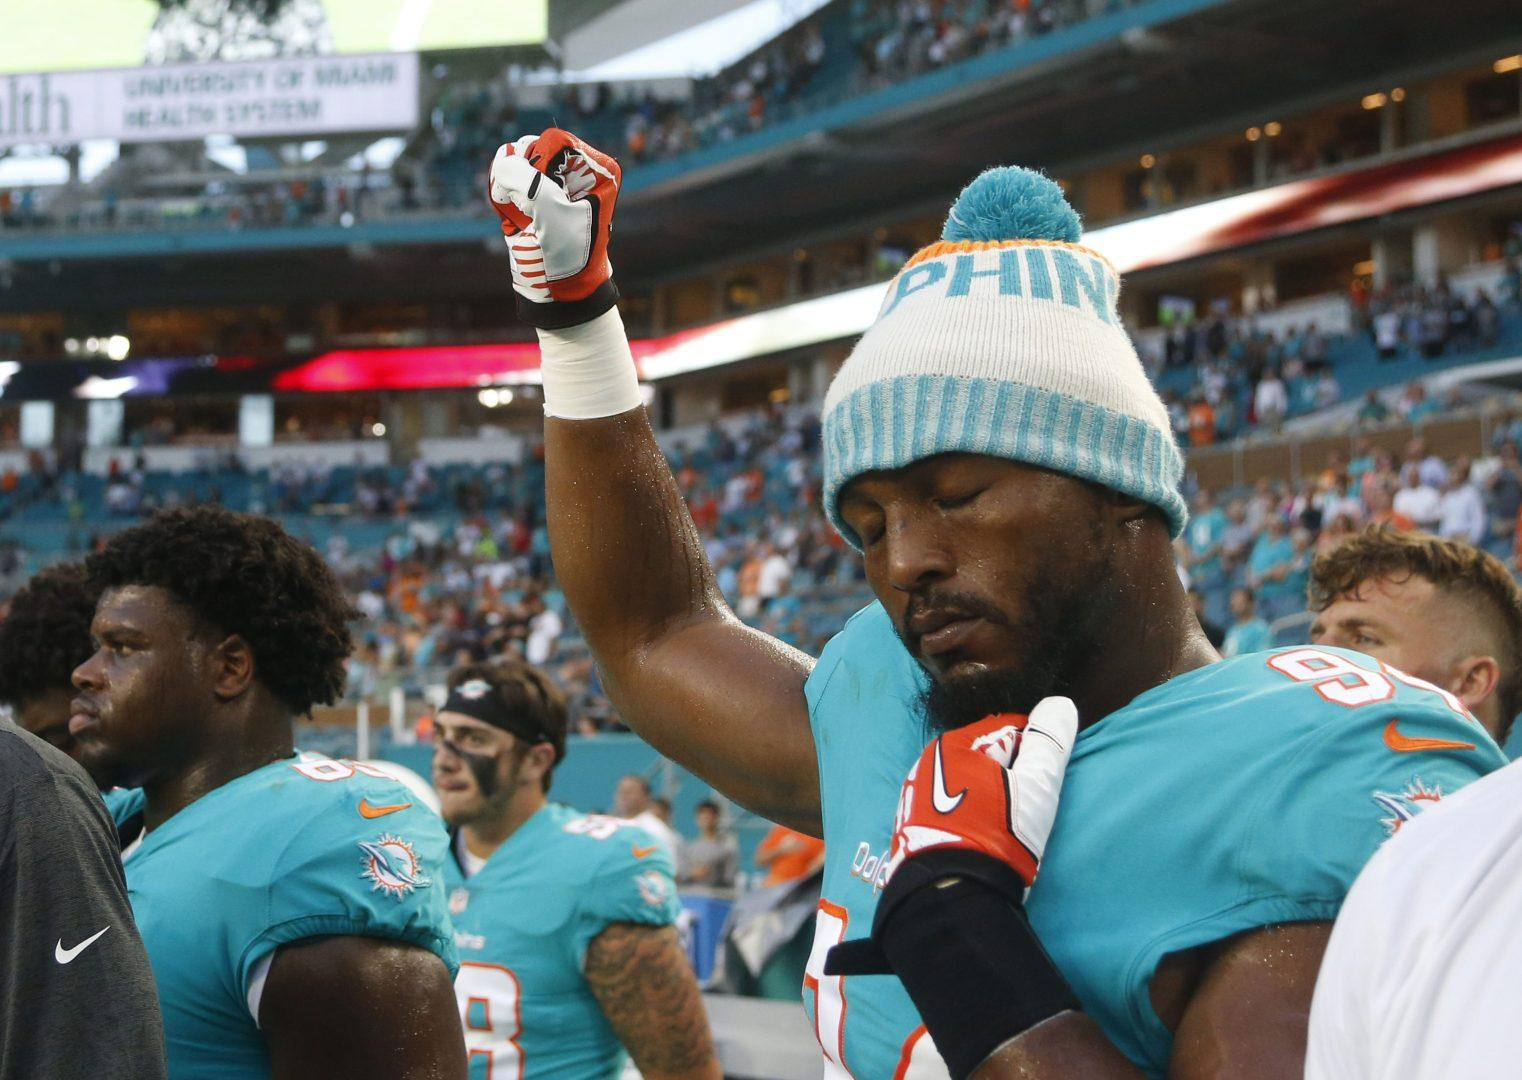 """Robert Quinn blames media for turning protests into """"what you wanted to make it"""""""